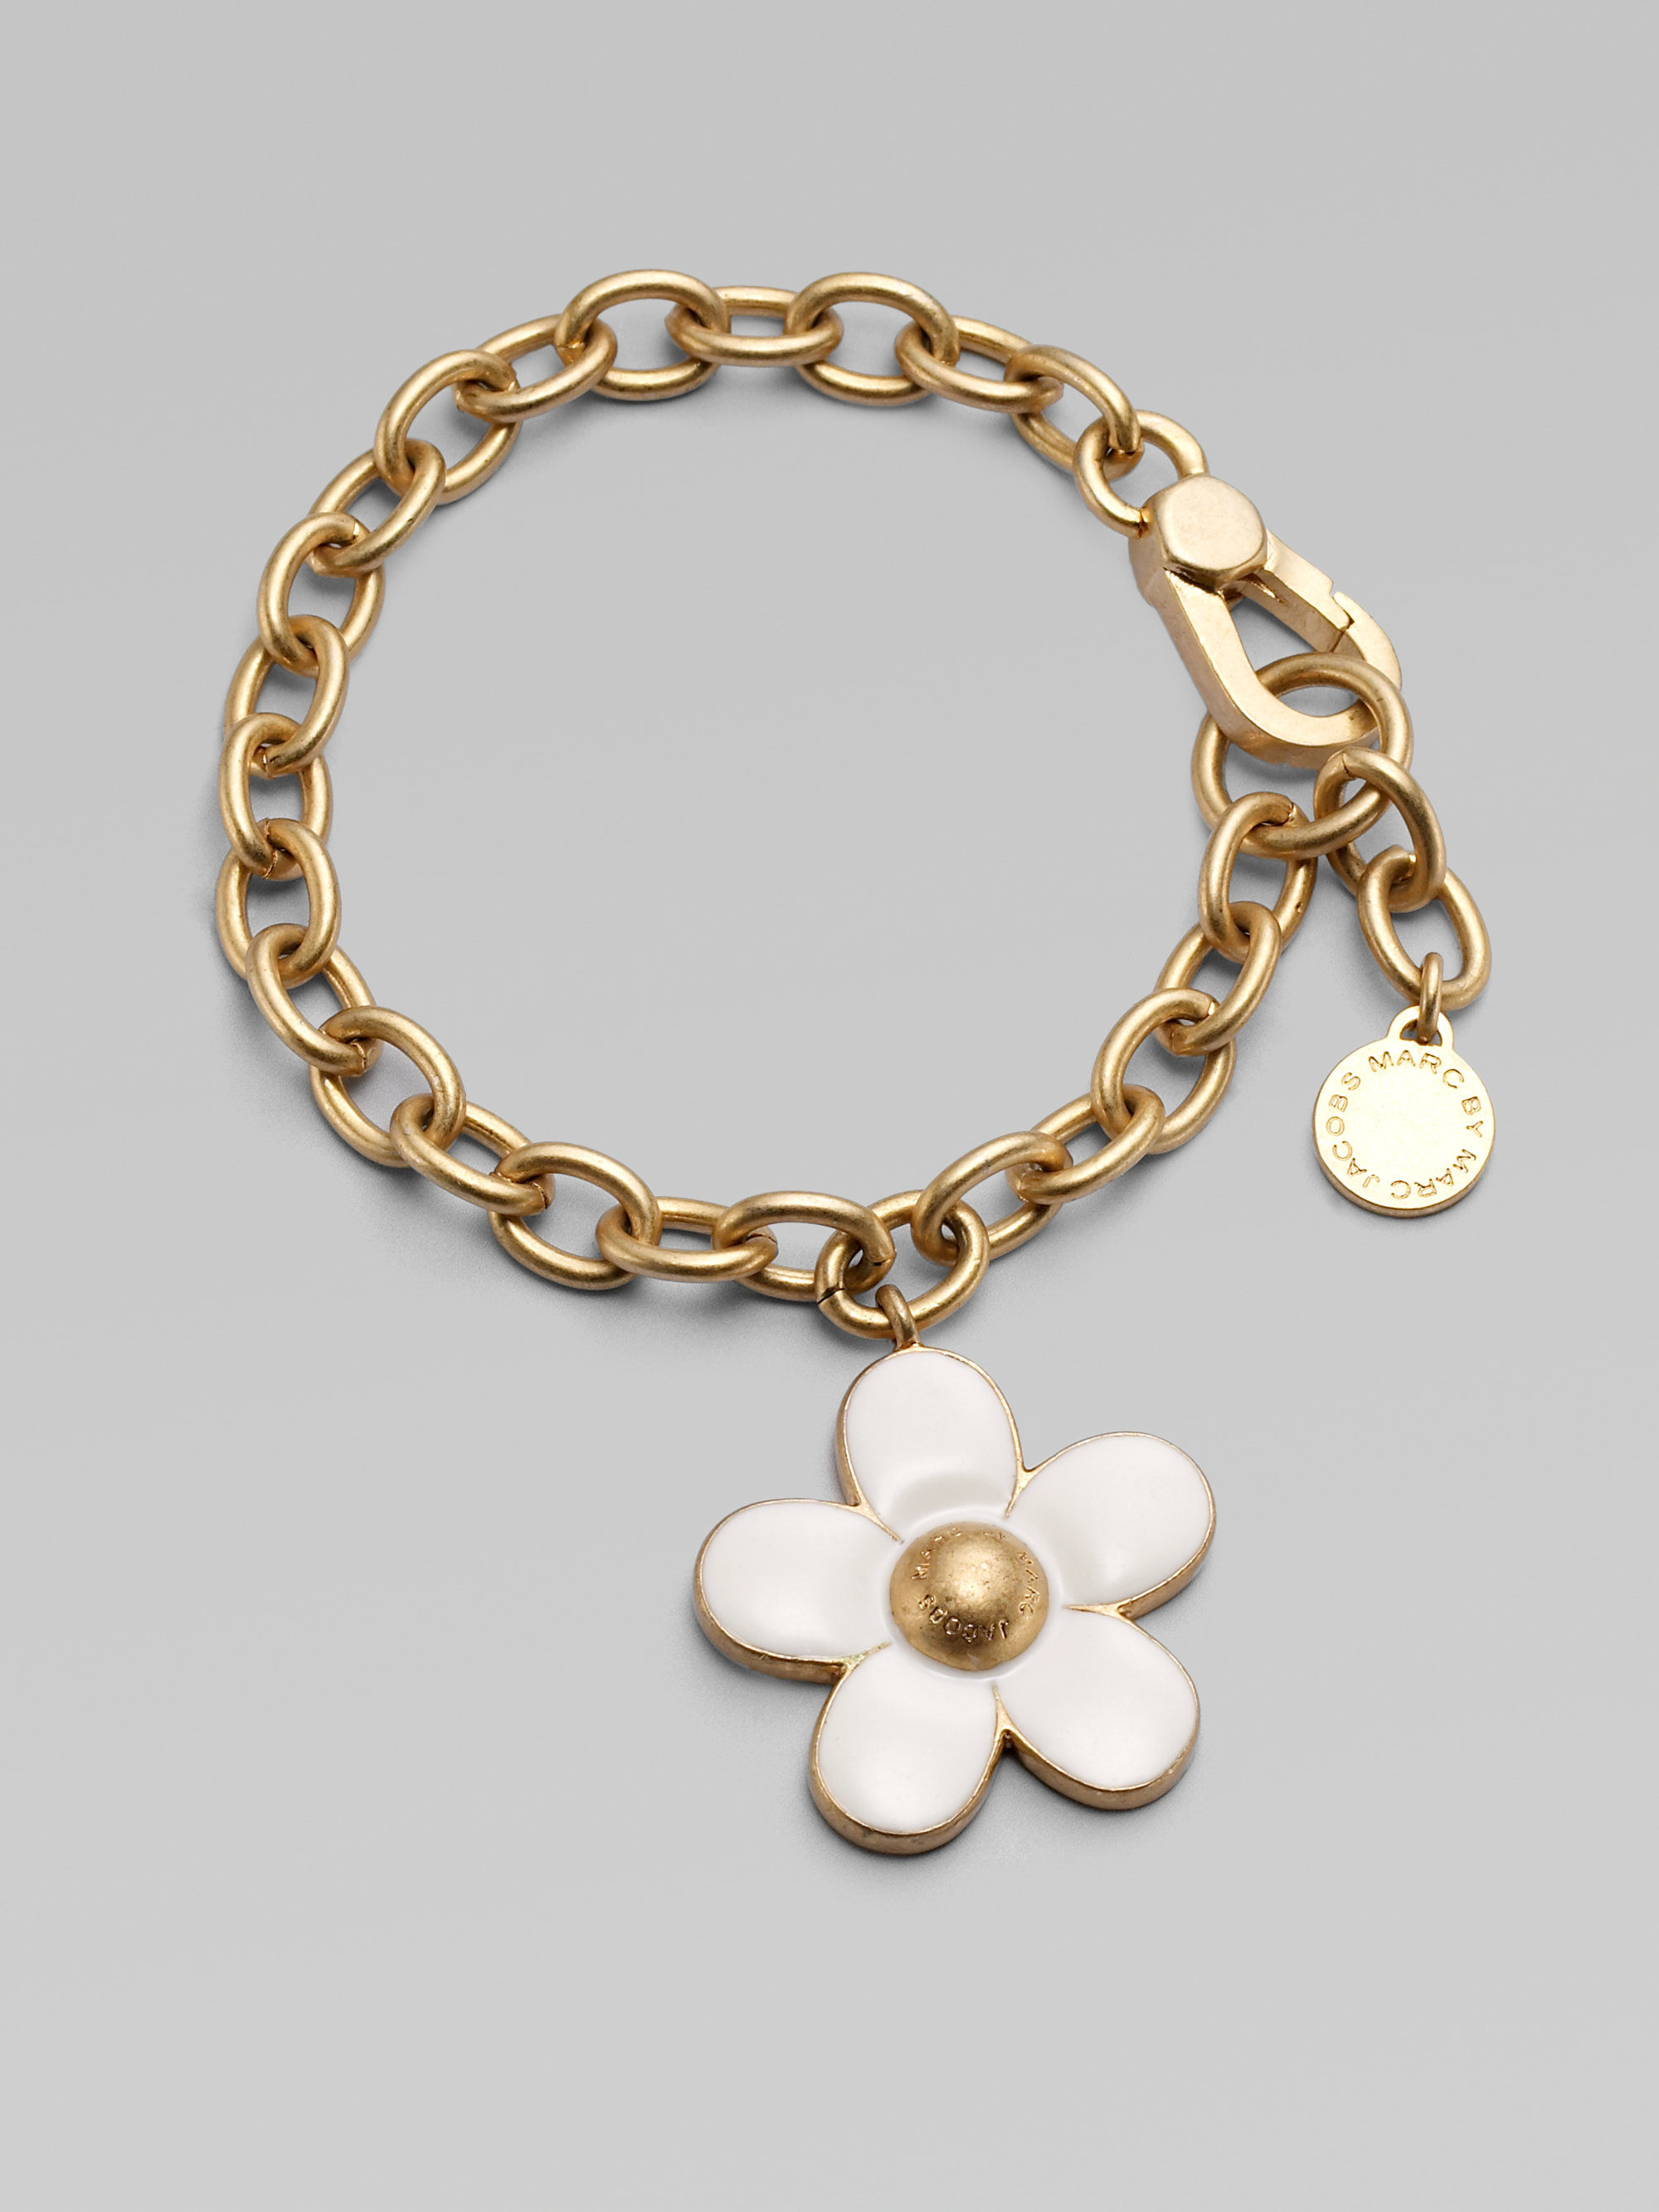 Marc by marc jacobs Daisy Charm Bracelet in Metallic